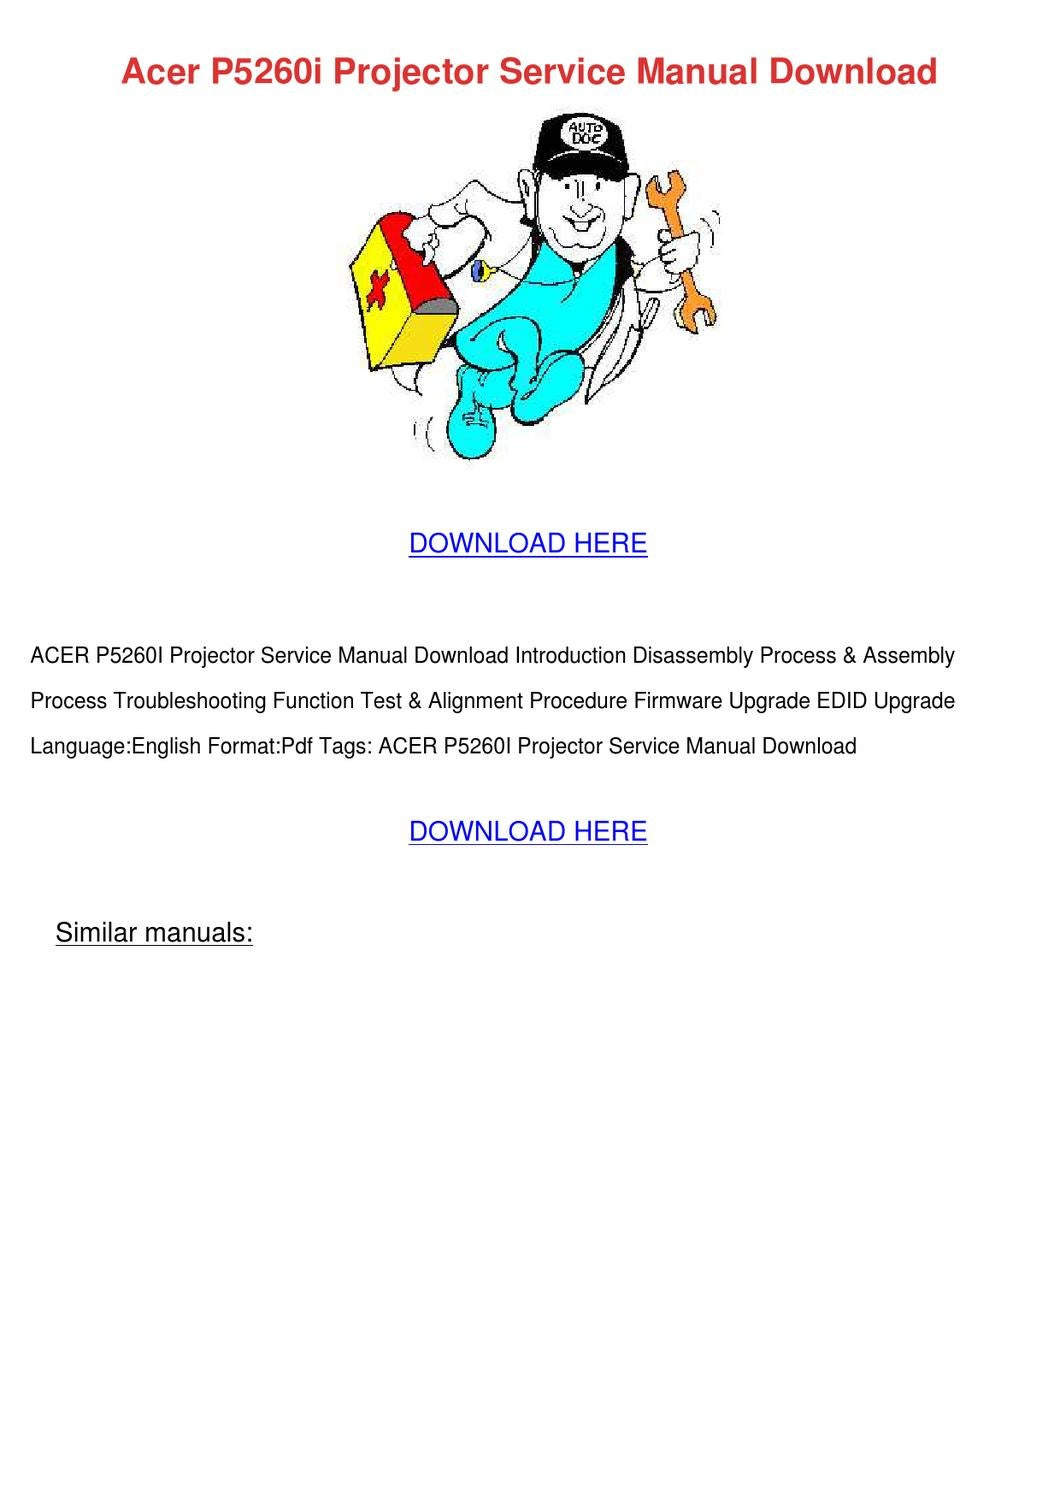 Acer P5260i Projector Service Manual Download by Cathi Keegan - issuu